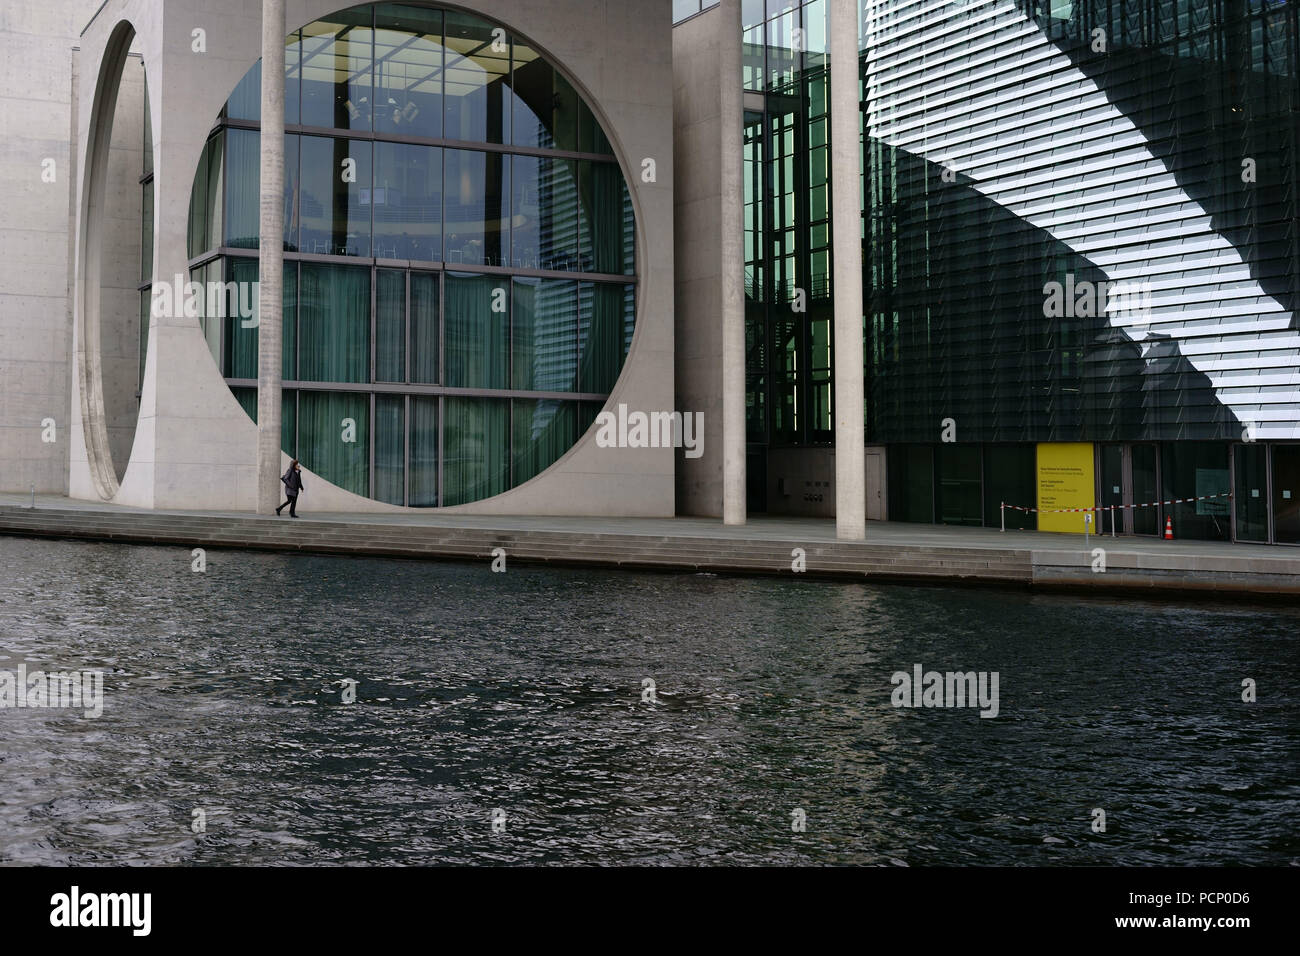 A pedestrian walking along the river Spree pasting the modern architecture of the Marie-Elisabeth-Lüders house in Berlin. Stock Photo